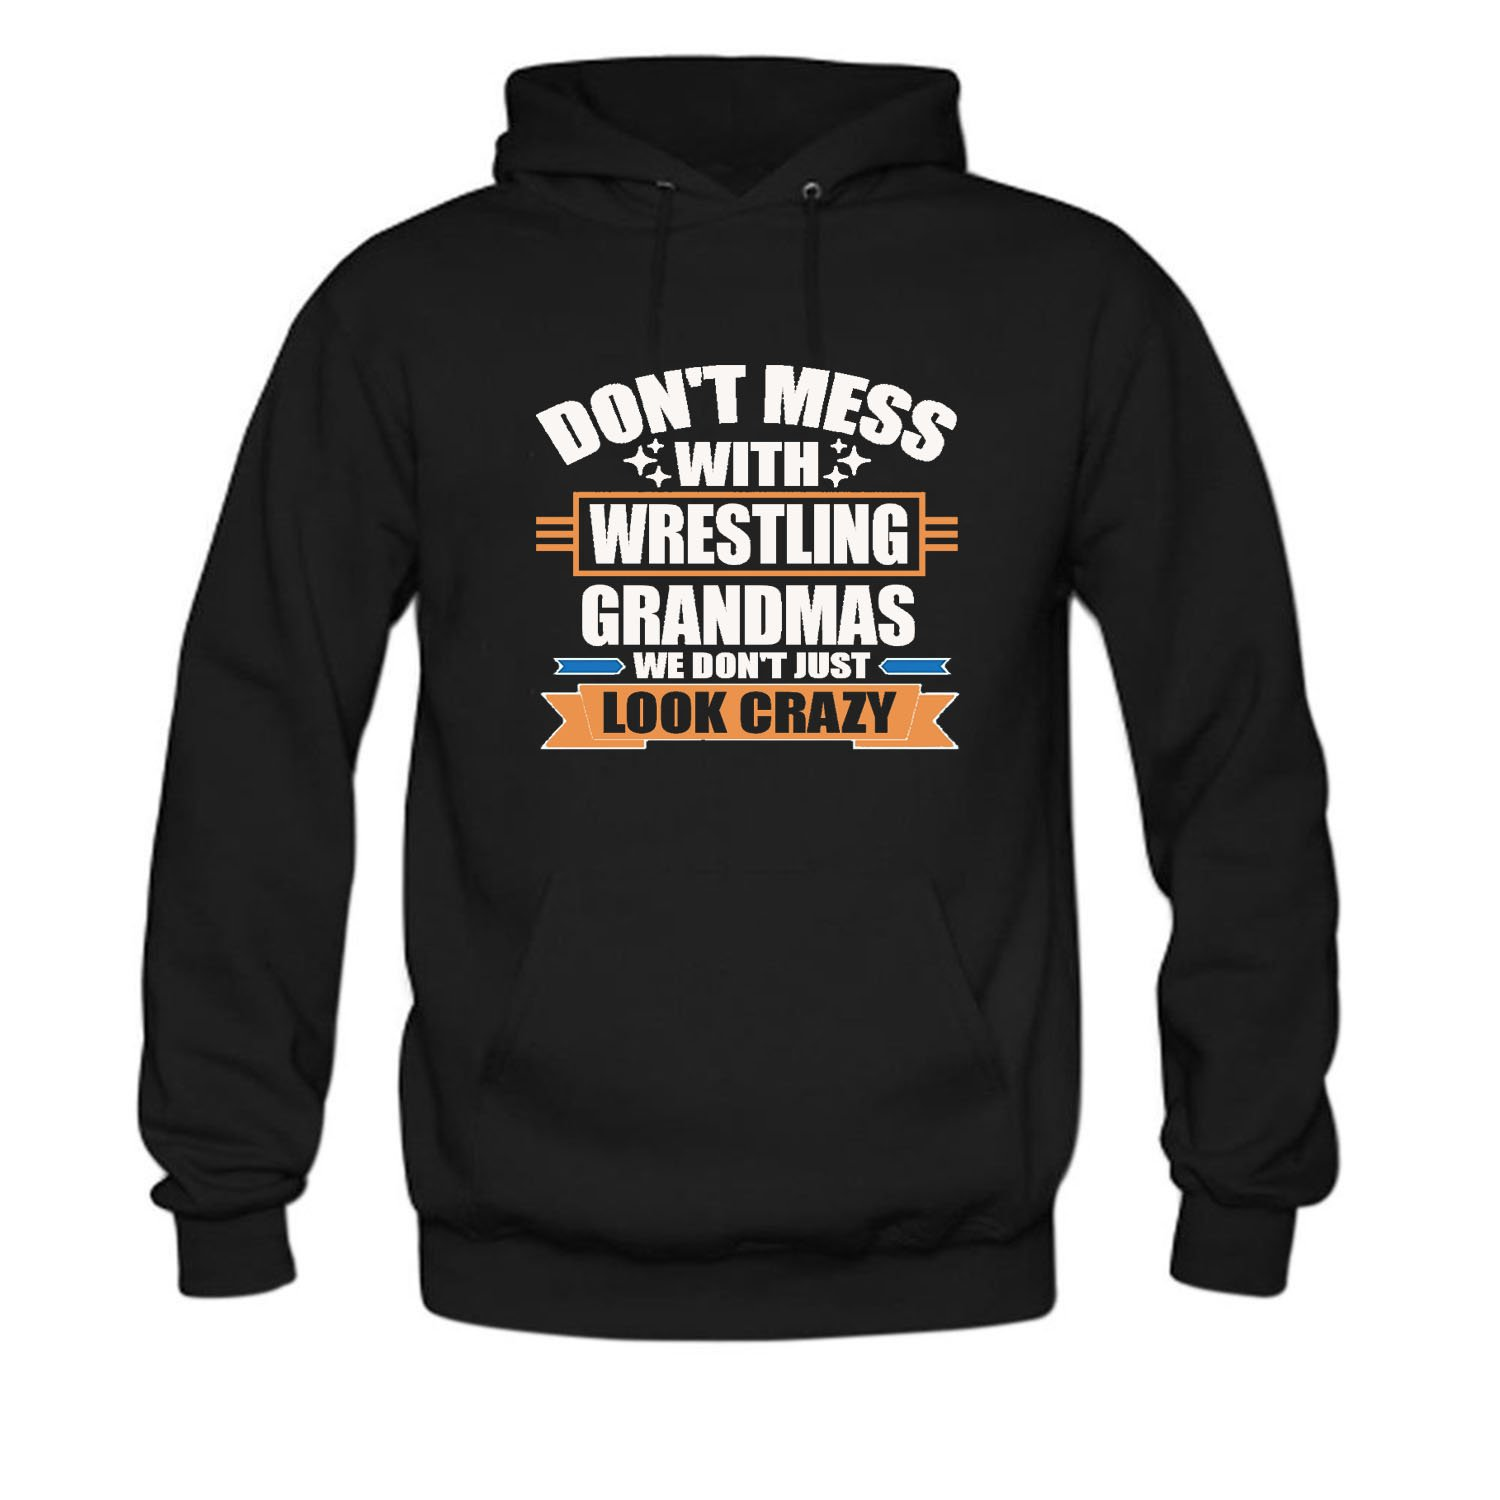 CCBING Women's Don't Mess With Wrestling Grandmas We Don't Just Look Crazy Hoodie